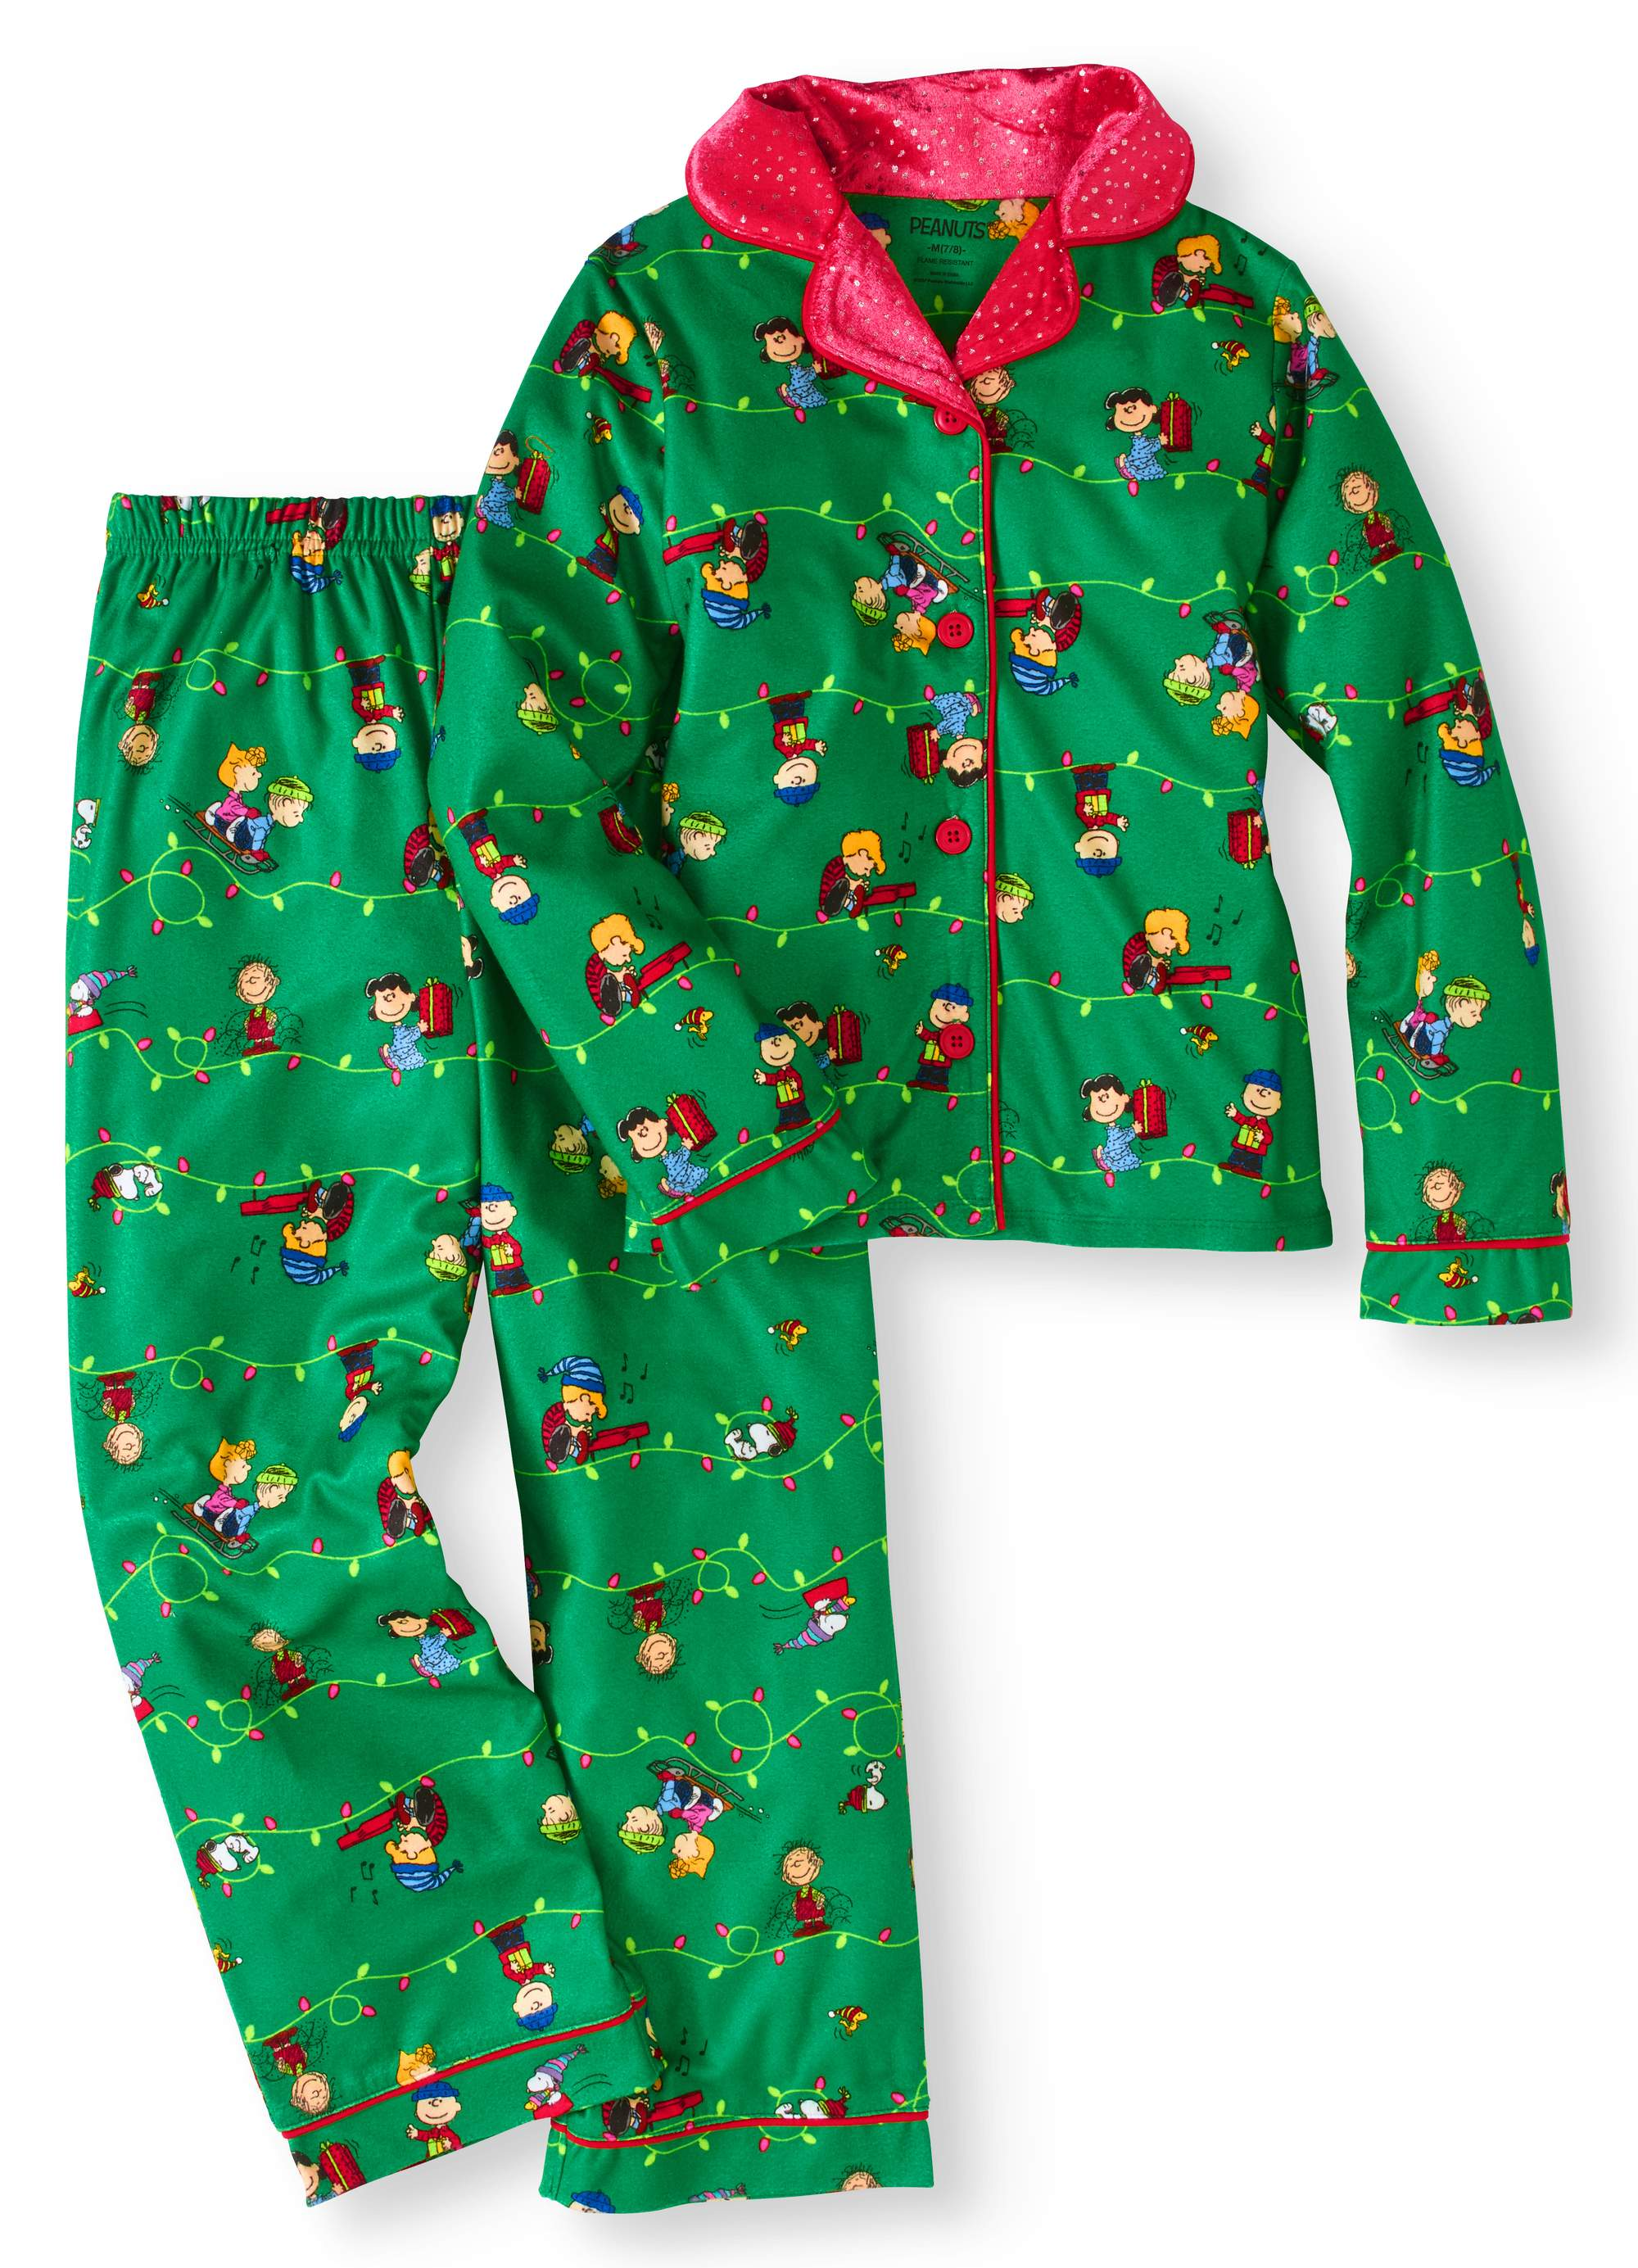 Snoopy Christmas Green Coat-Style Pajamas for Boys Peanuts Charlie Brown Holiday